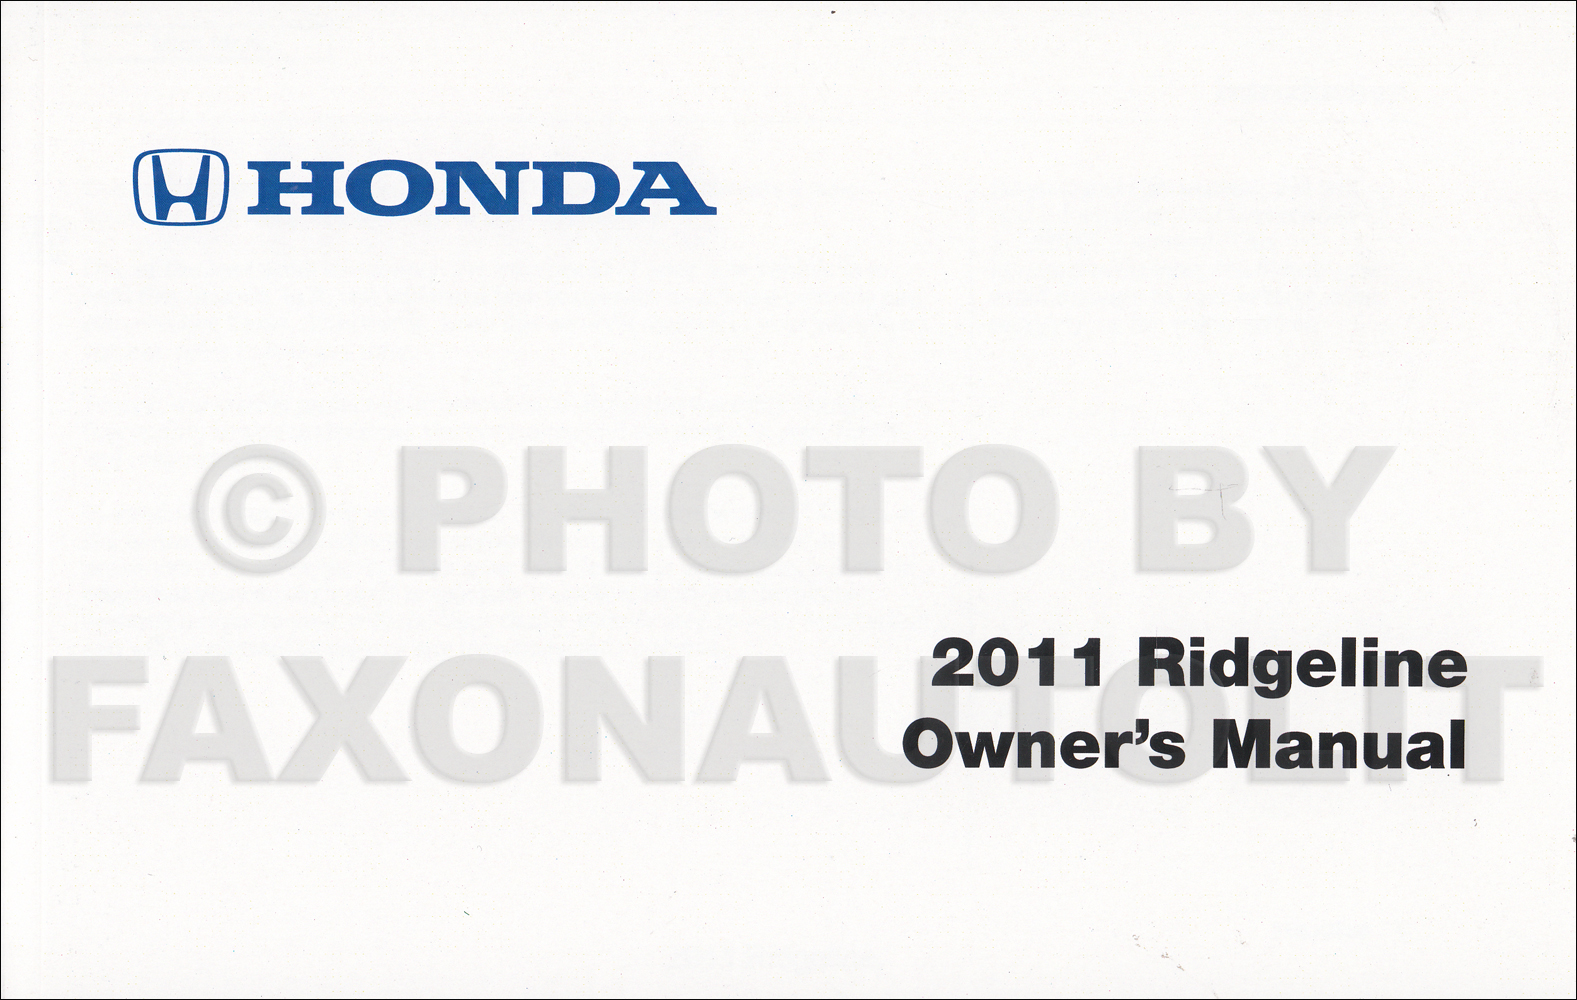 2011 Honda Ridgeline Owner's Manual Reprint